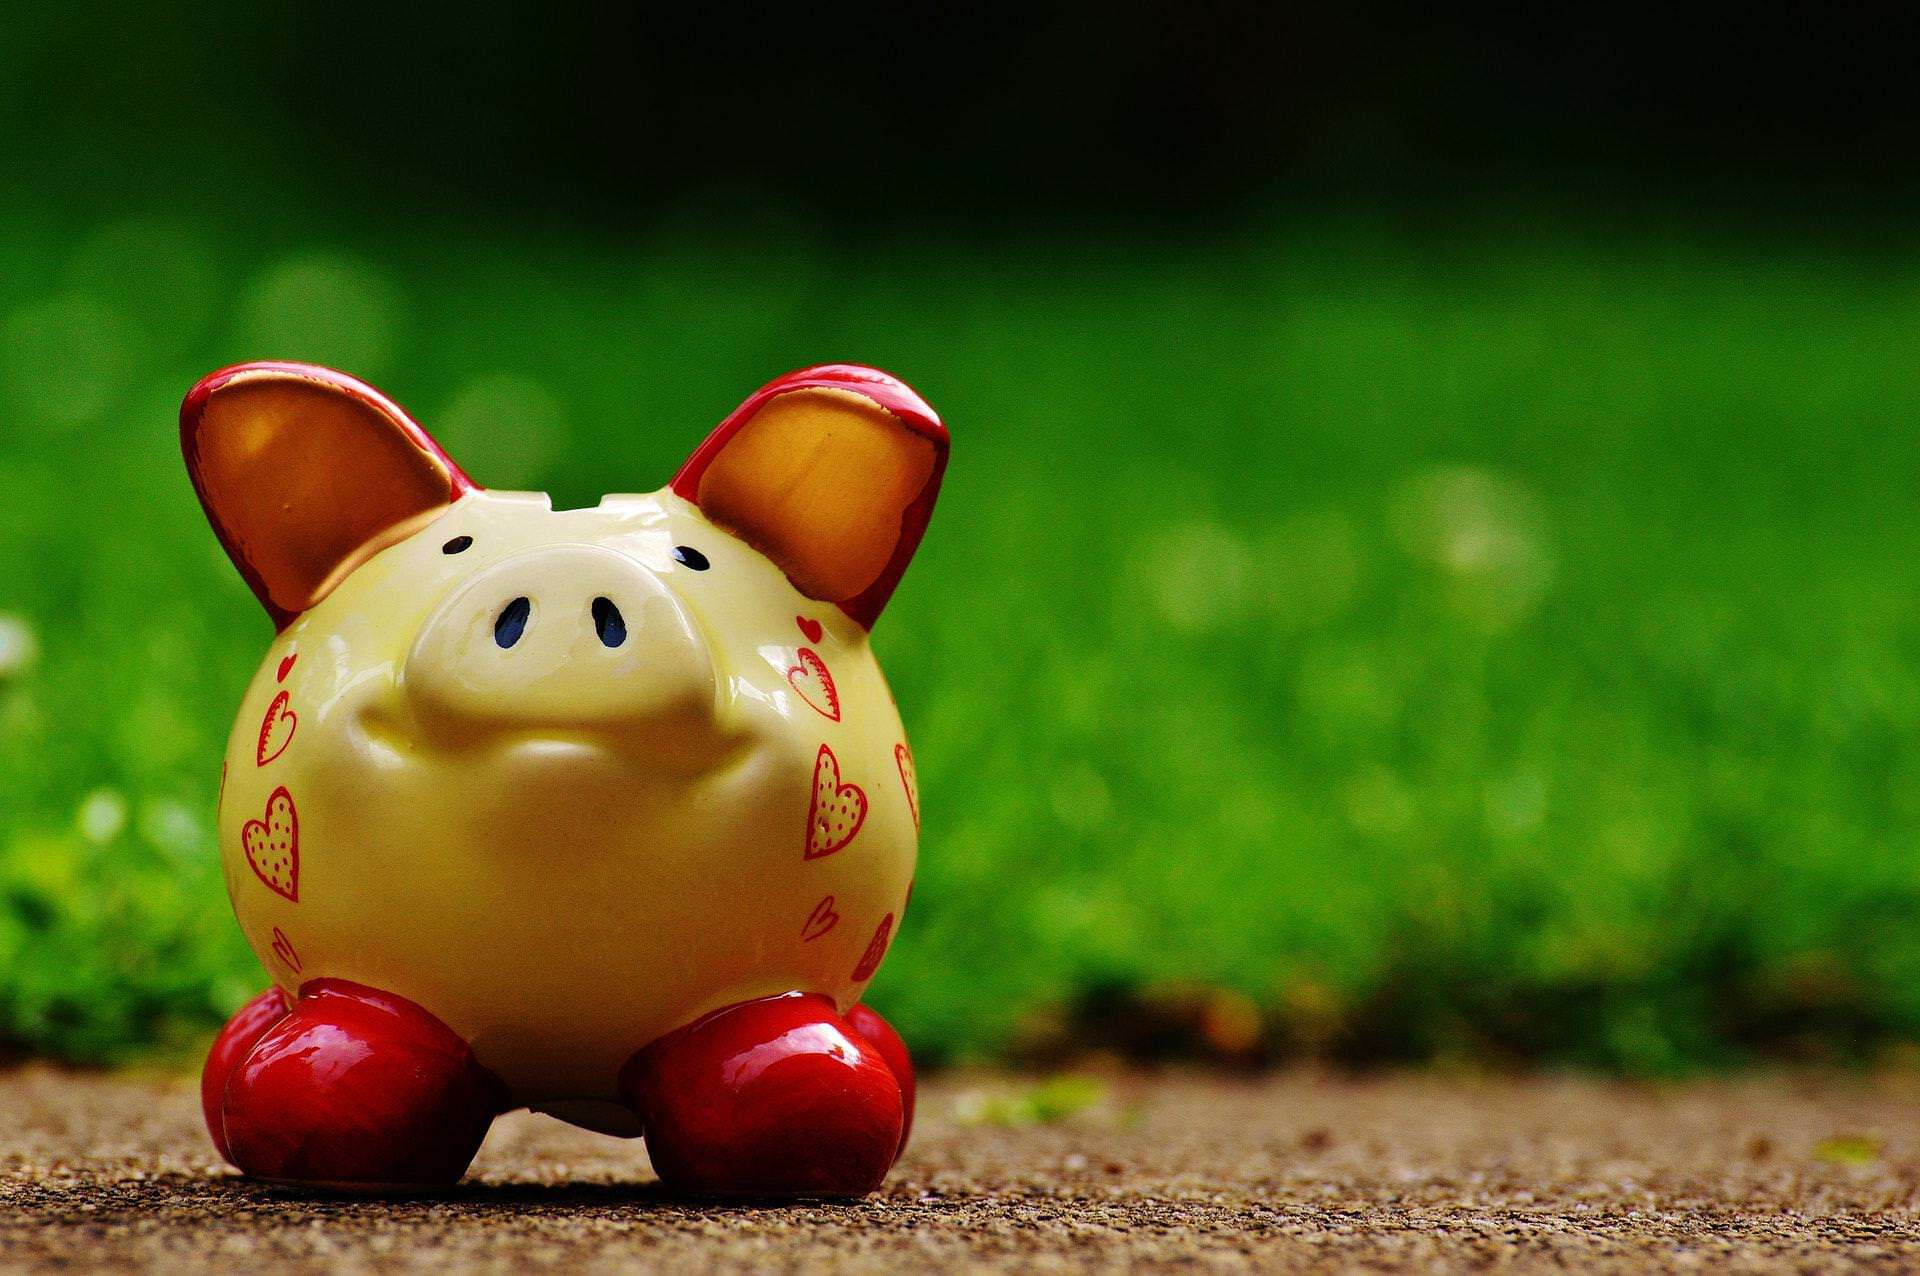 Piggy bank used as a metaphor for saving money from investing in a solar system